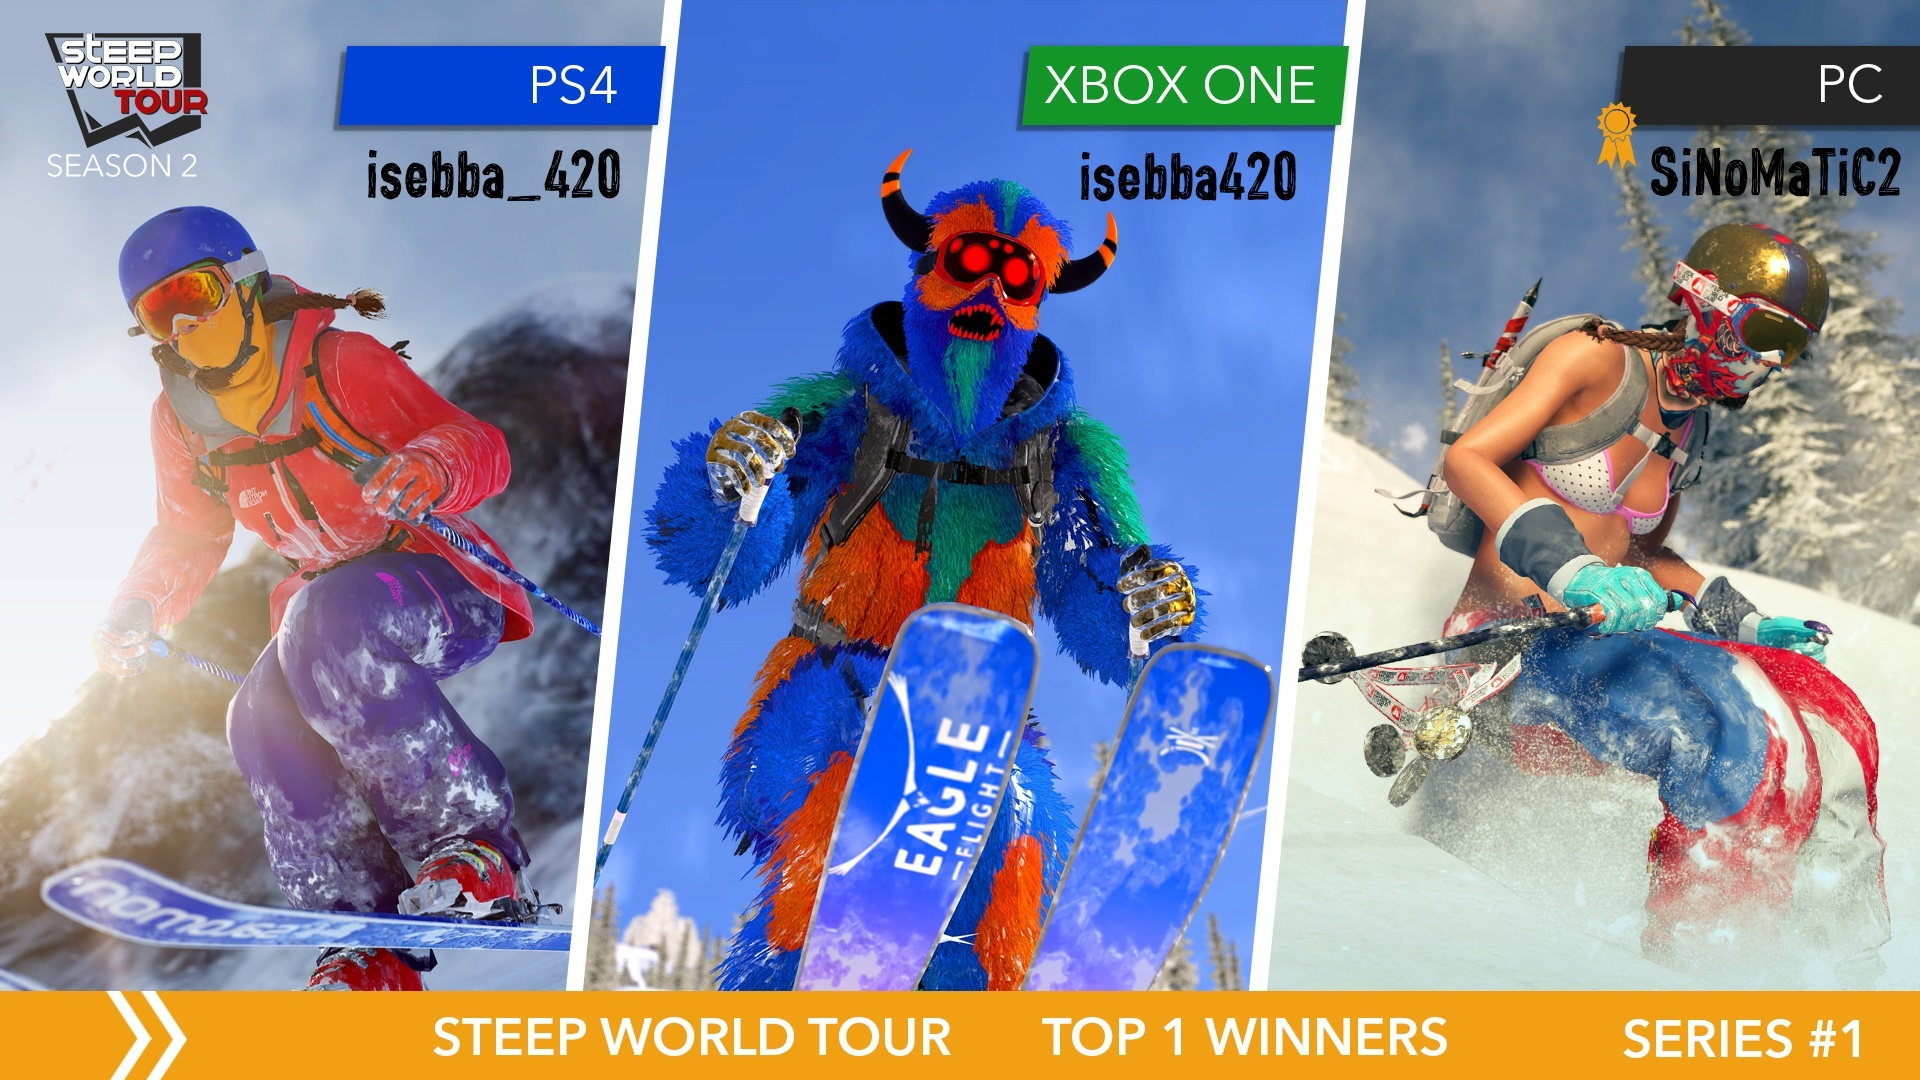 Aug 9, 2017 Steep World Tour - 'Find your way': the winners! Steep